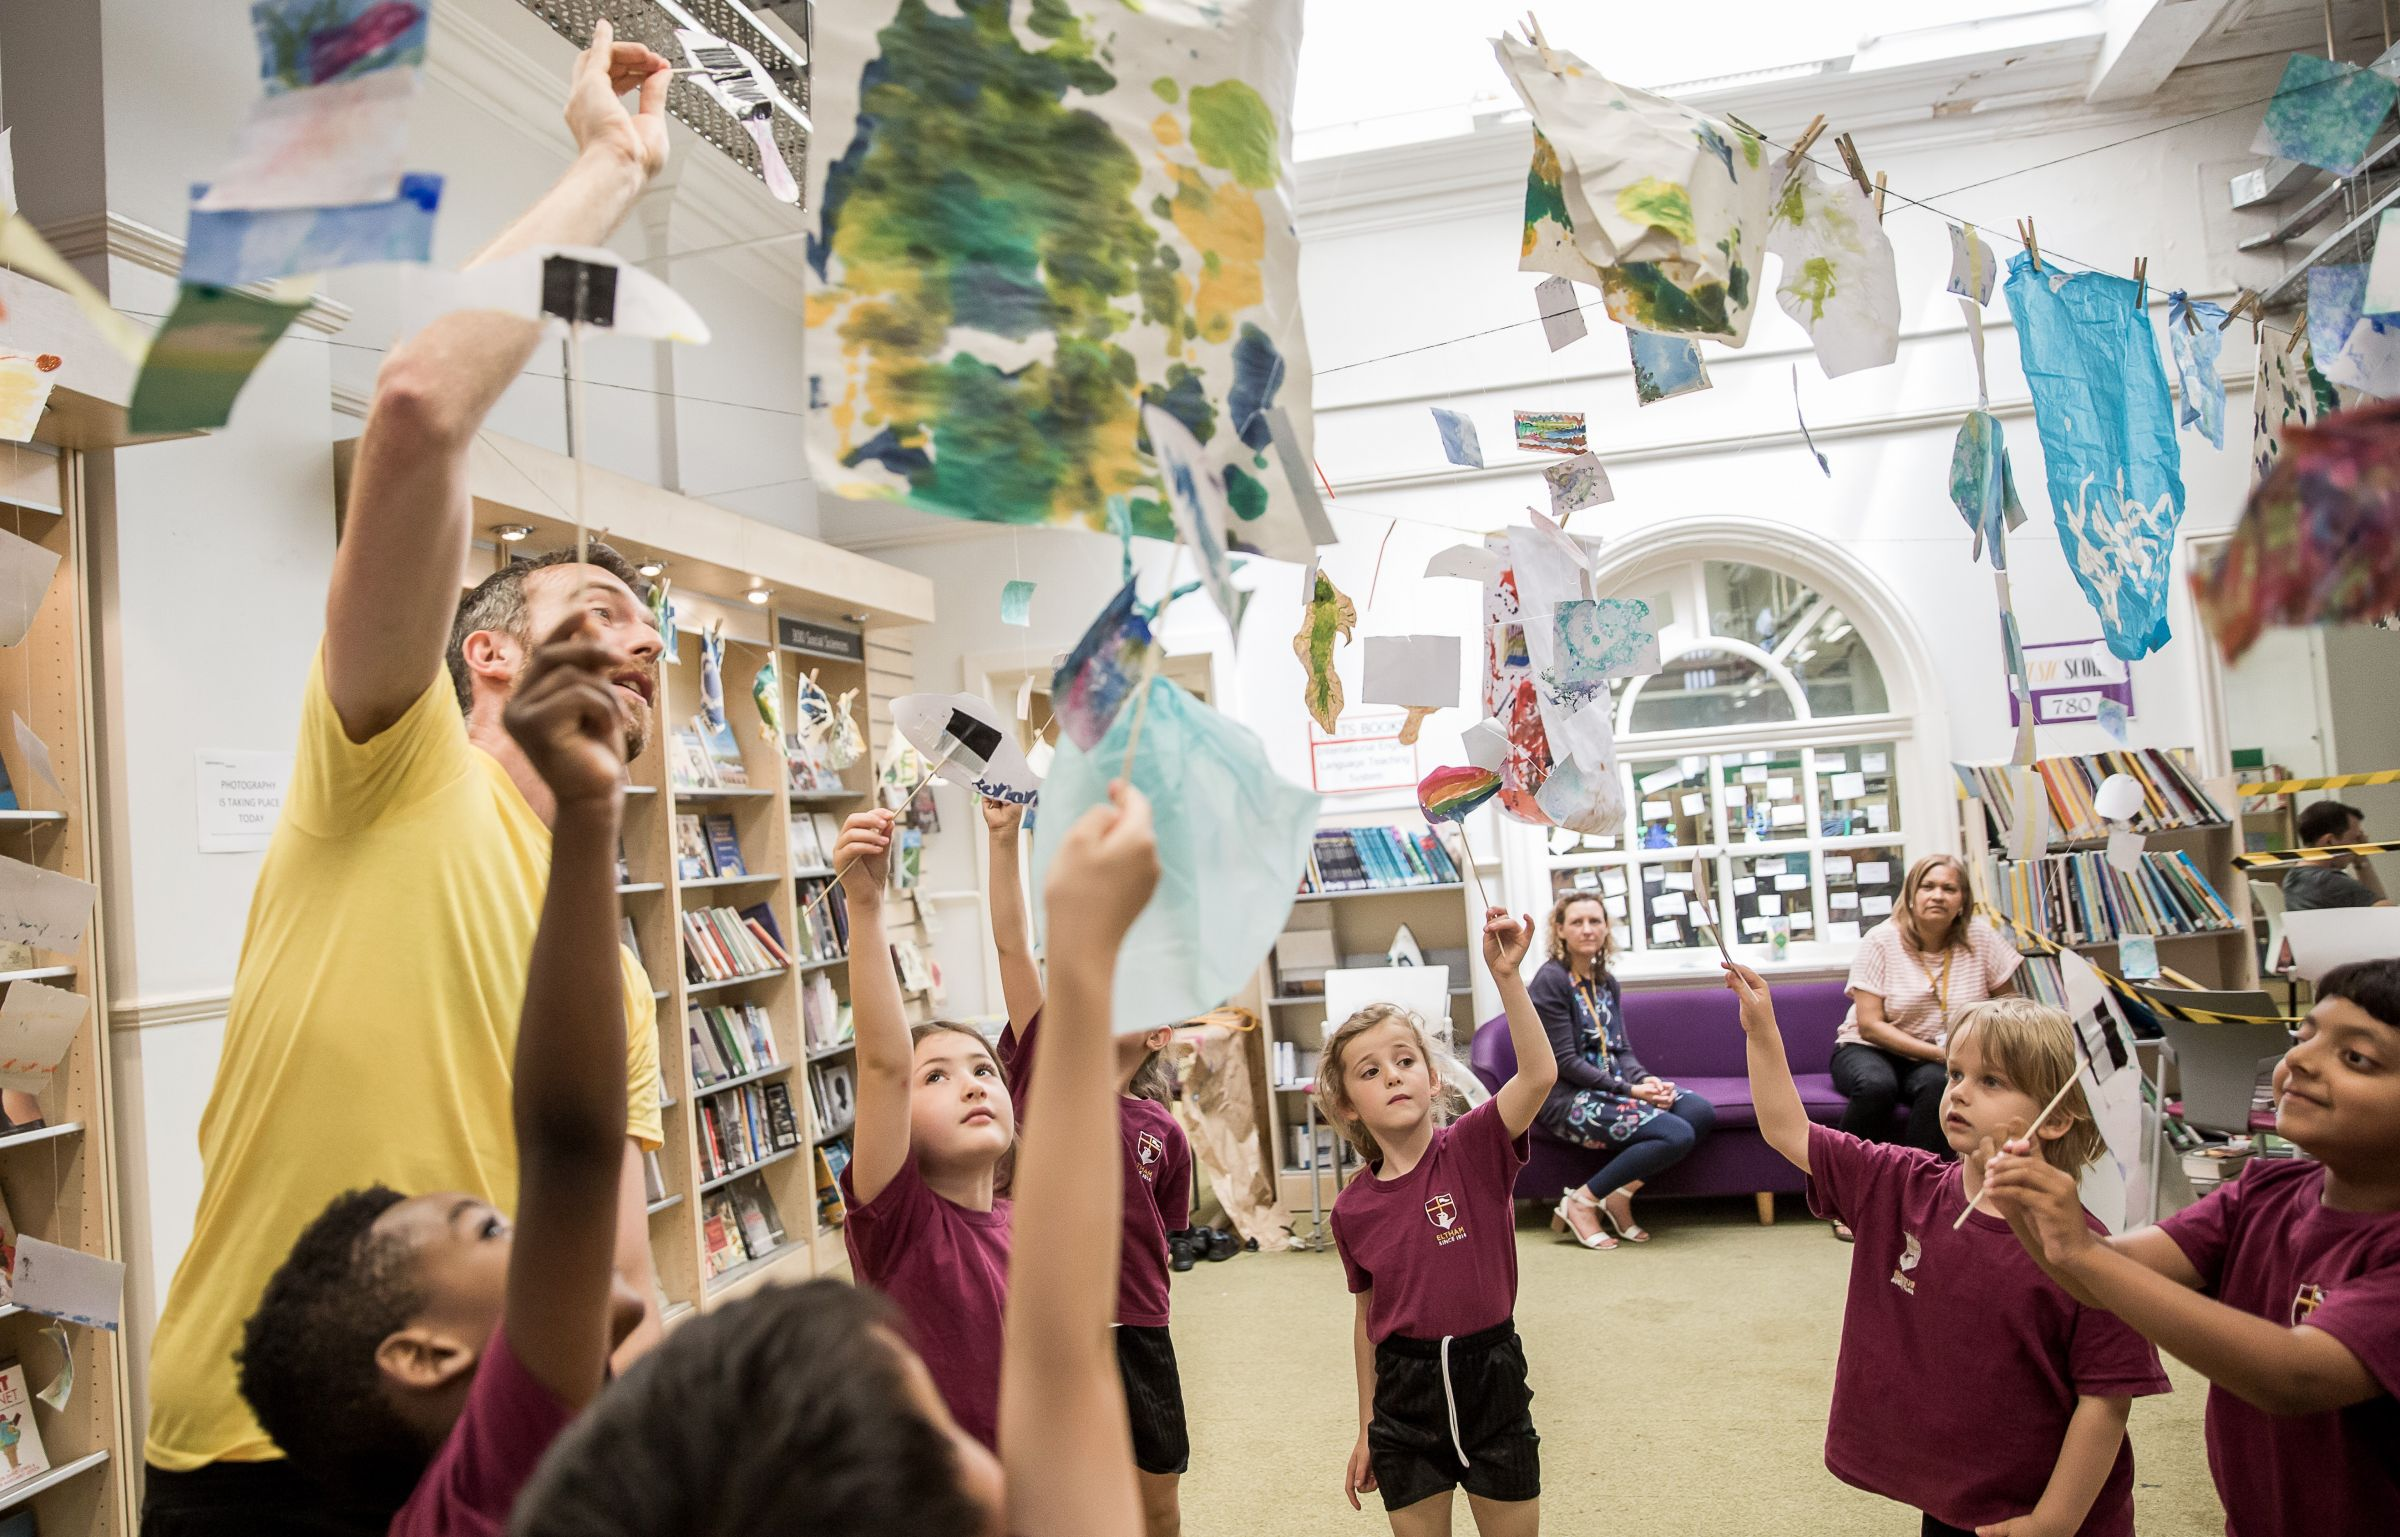 School children reach up to pictures that are hanging from the ceiling